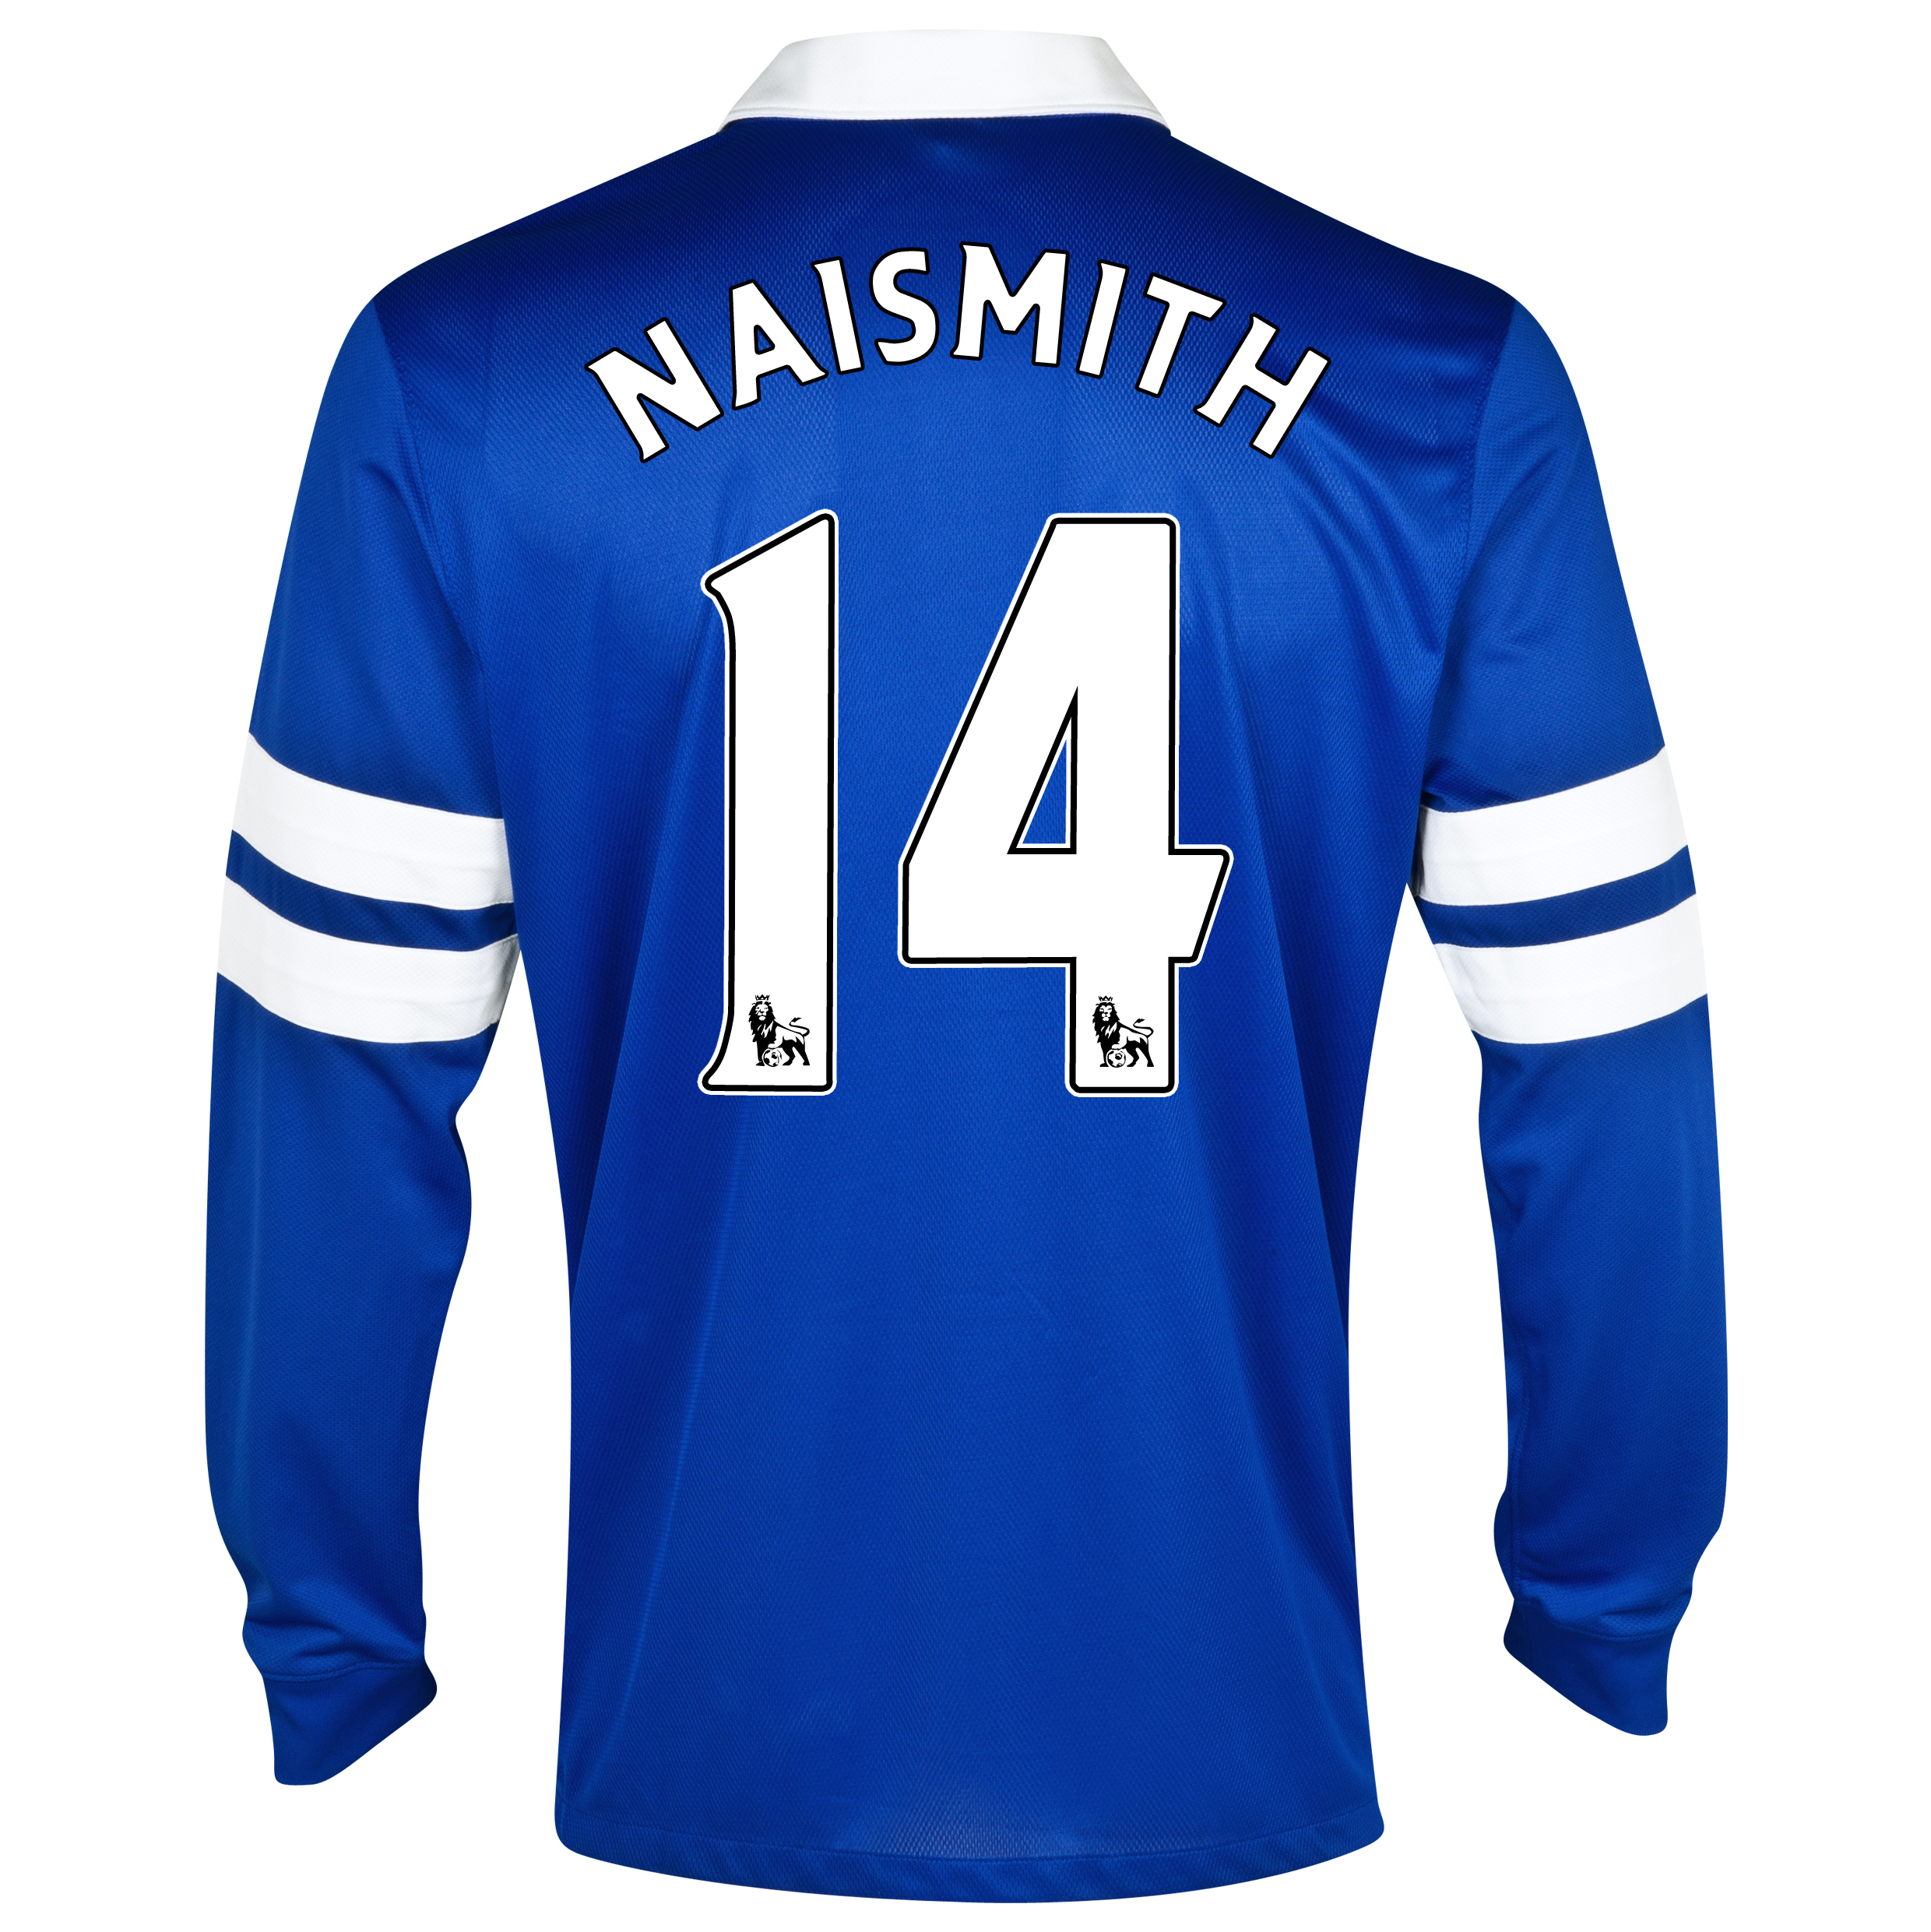 Everton Home Shirt 2013/14 - Long Sleeved Blue with Naismith 14 printing